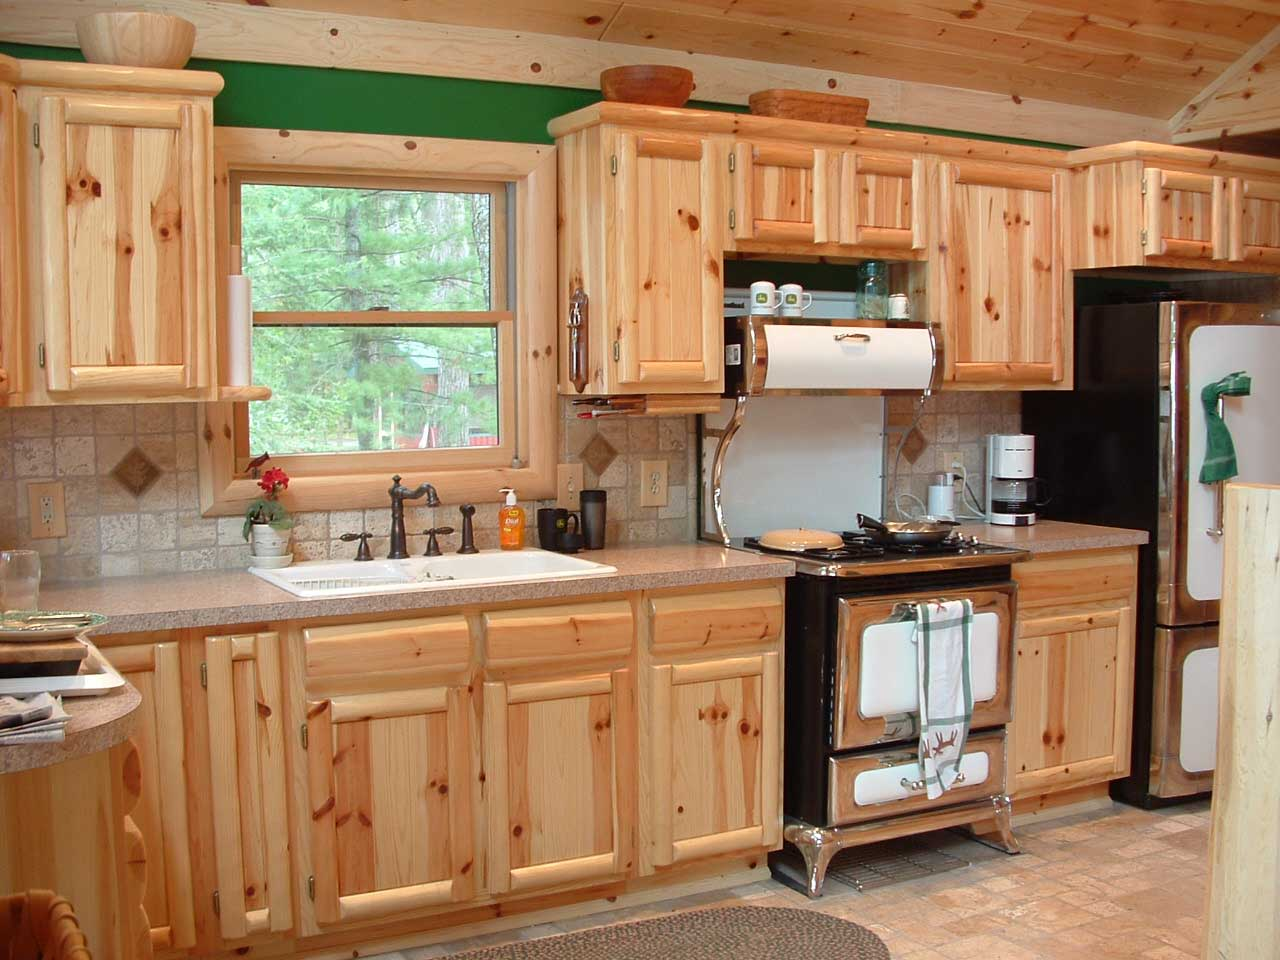 Cabinetry kitchens and baths timber country cabinetry for Pine kitchen furniture